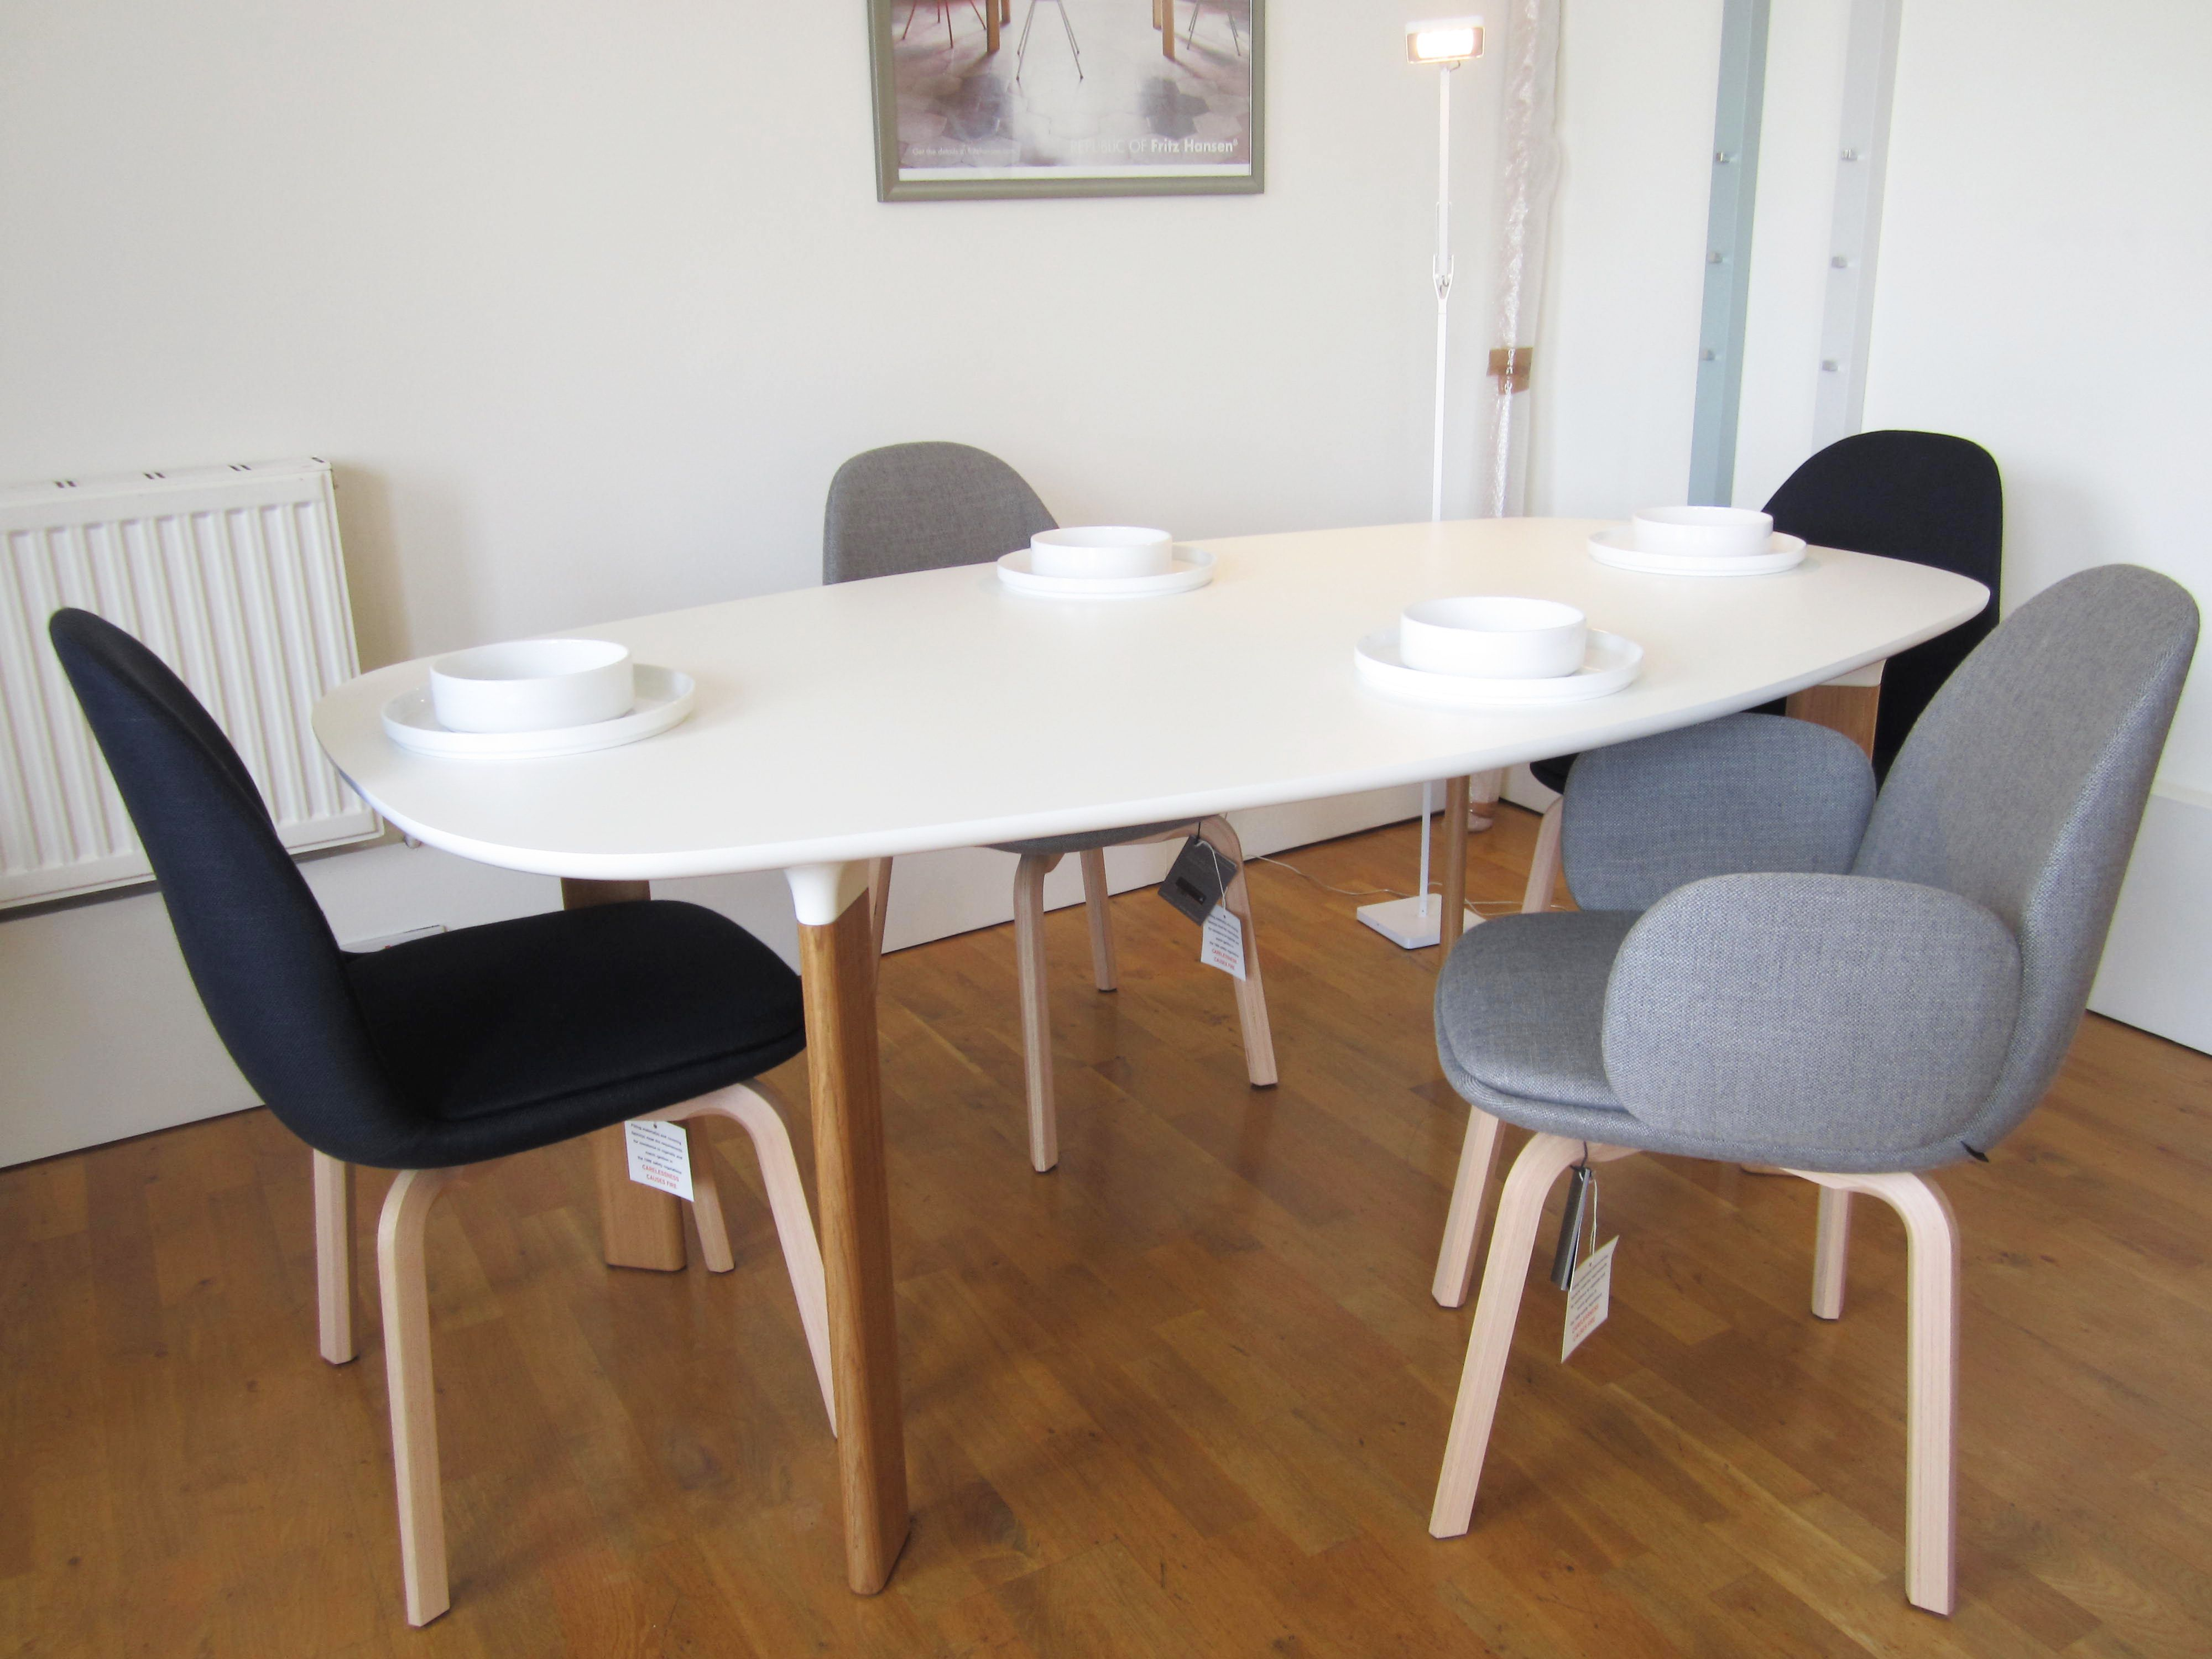 new sammen dining chairs by jaime hayon for fritz hansen available rh pinterest com